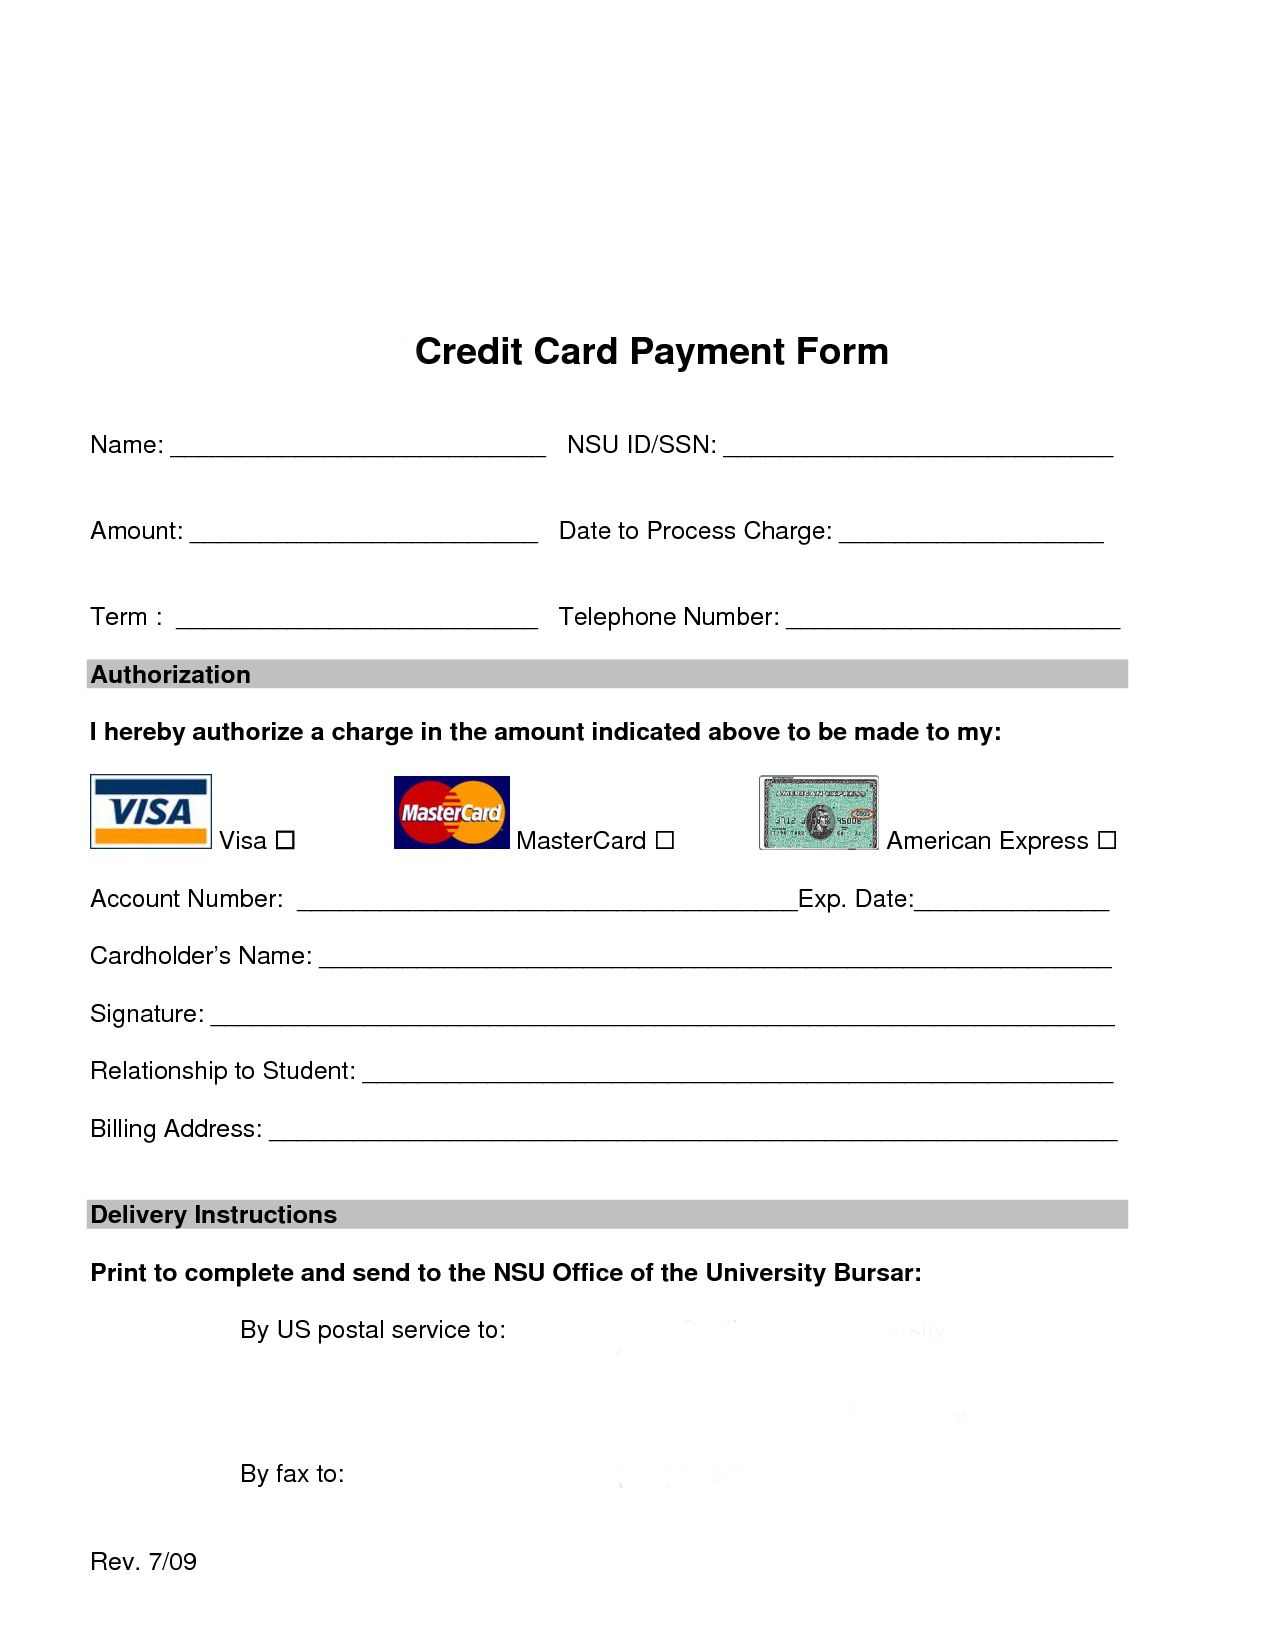 Credit Card Authorization Form | Card Not Present, CenPOS, credit